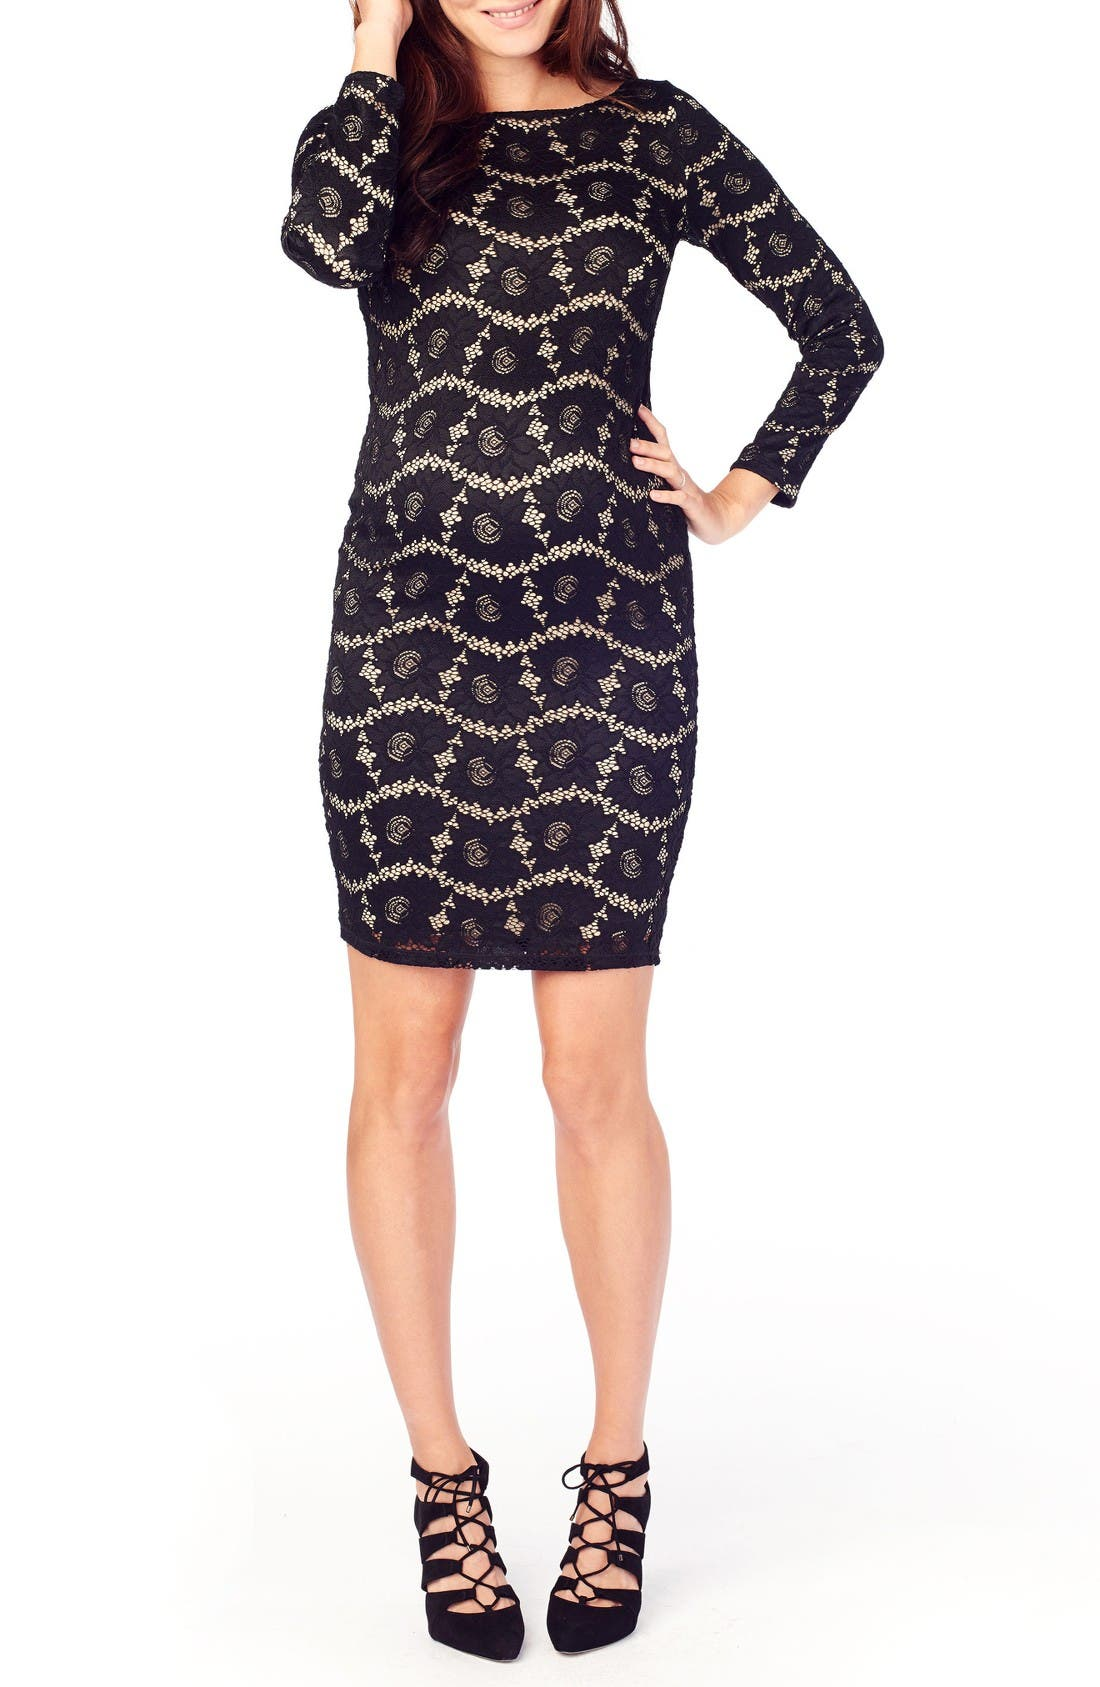 Womens dresses maternity clothing nordstrom ombrellifo Gallery